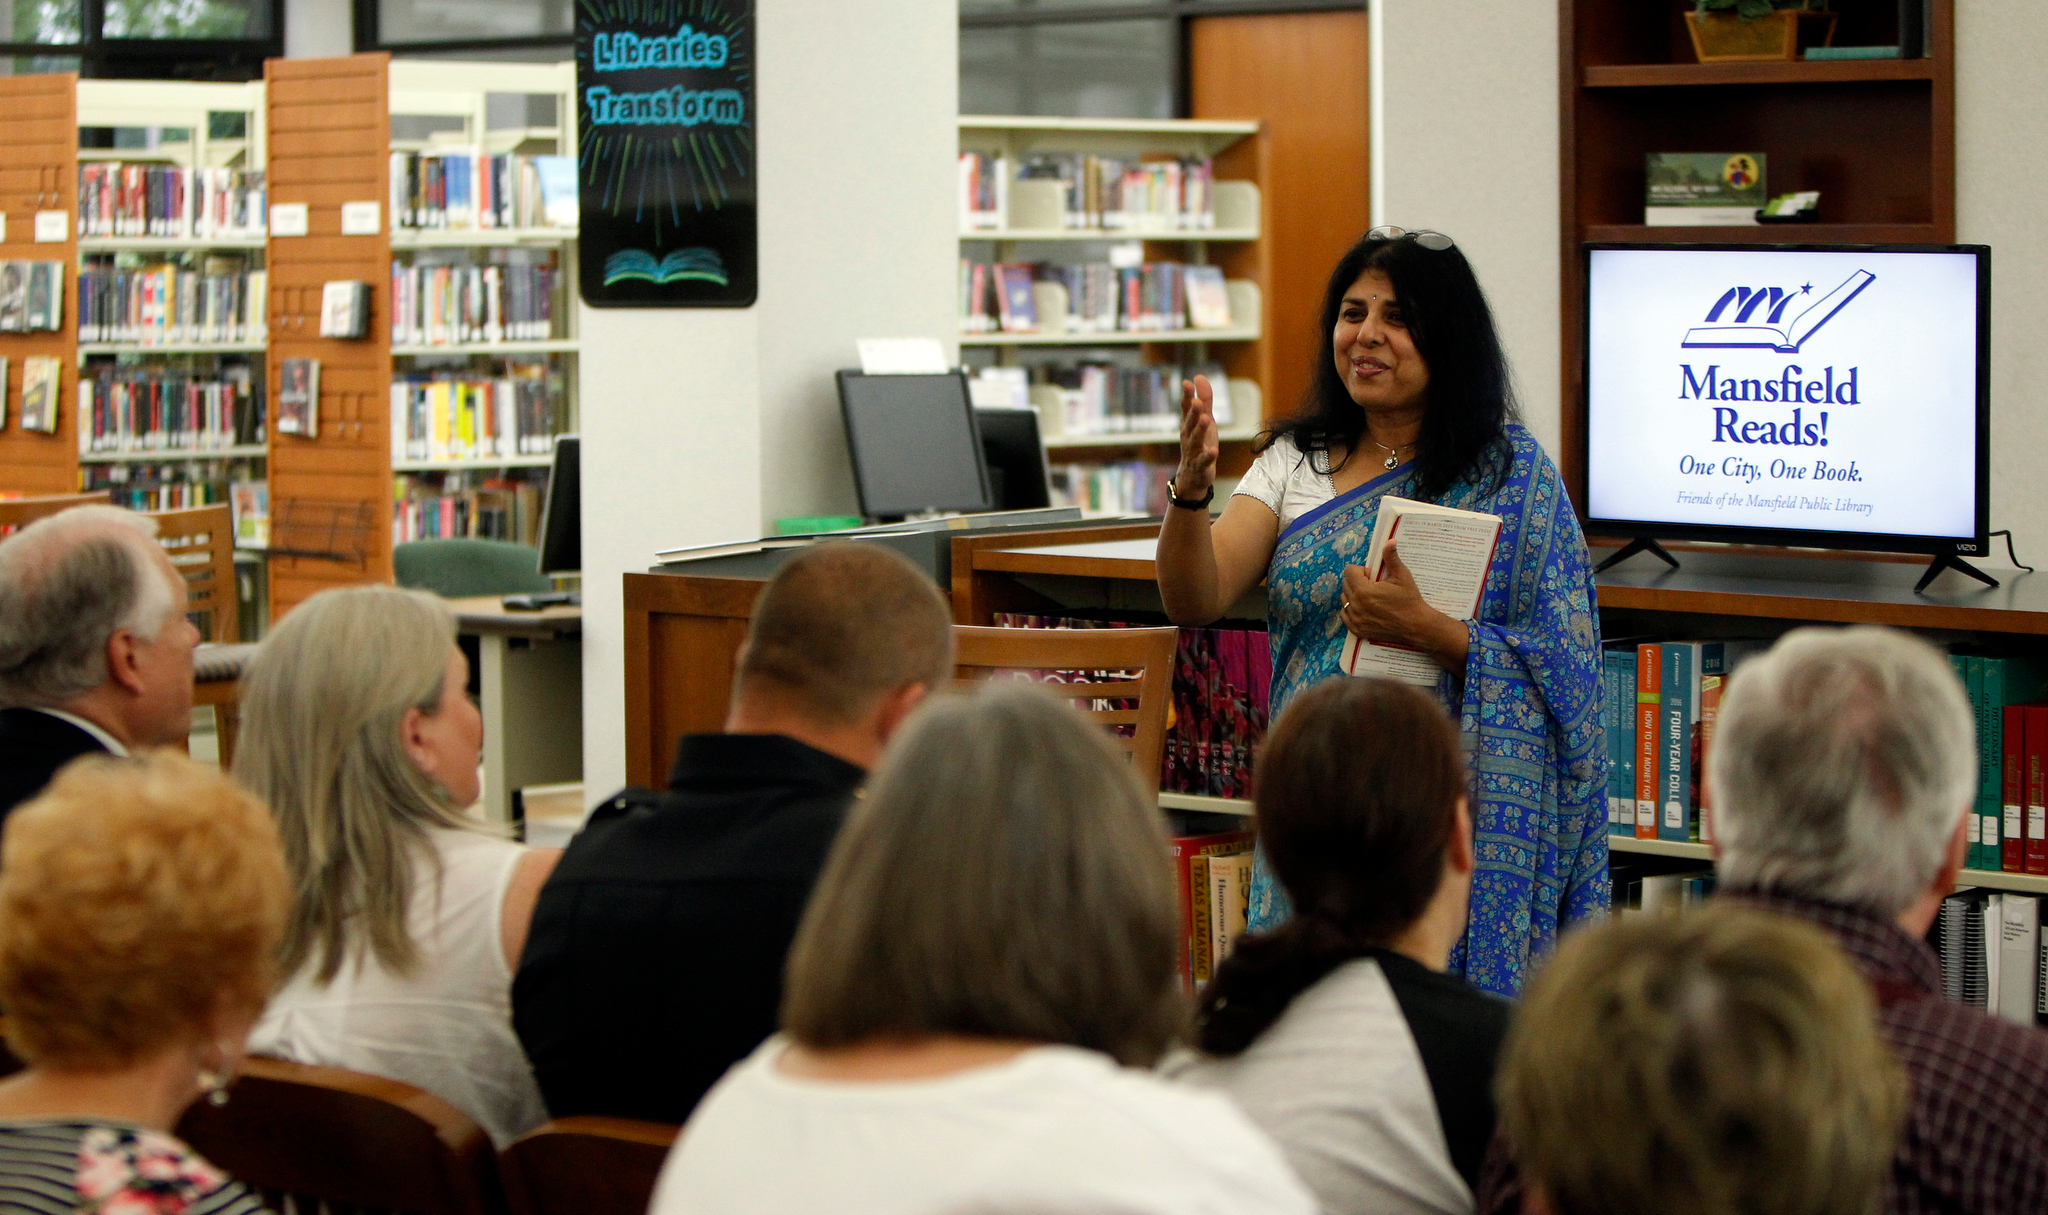 2017 Mansfield Reads with Chitra Divakaruni